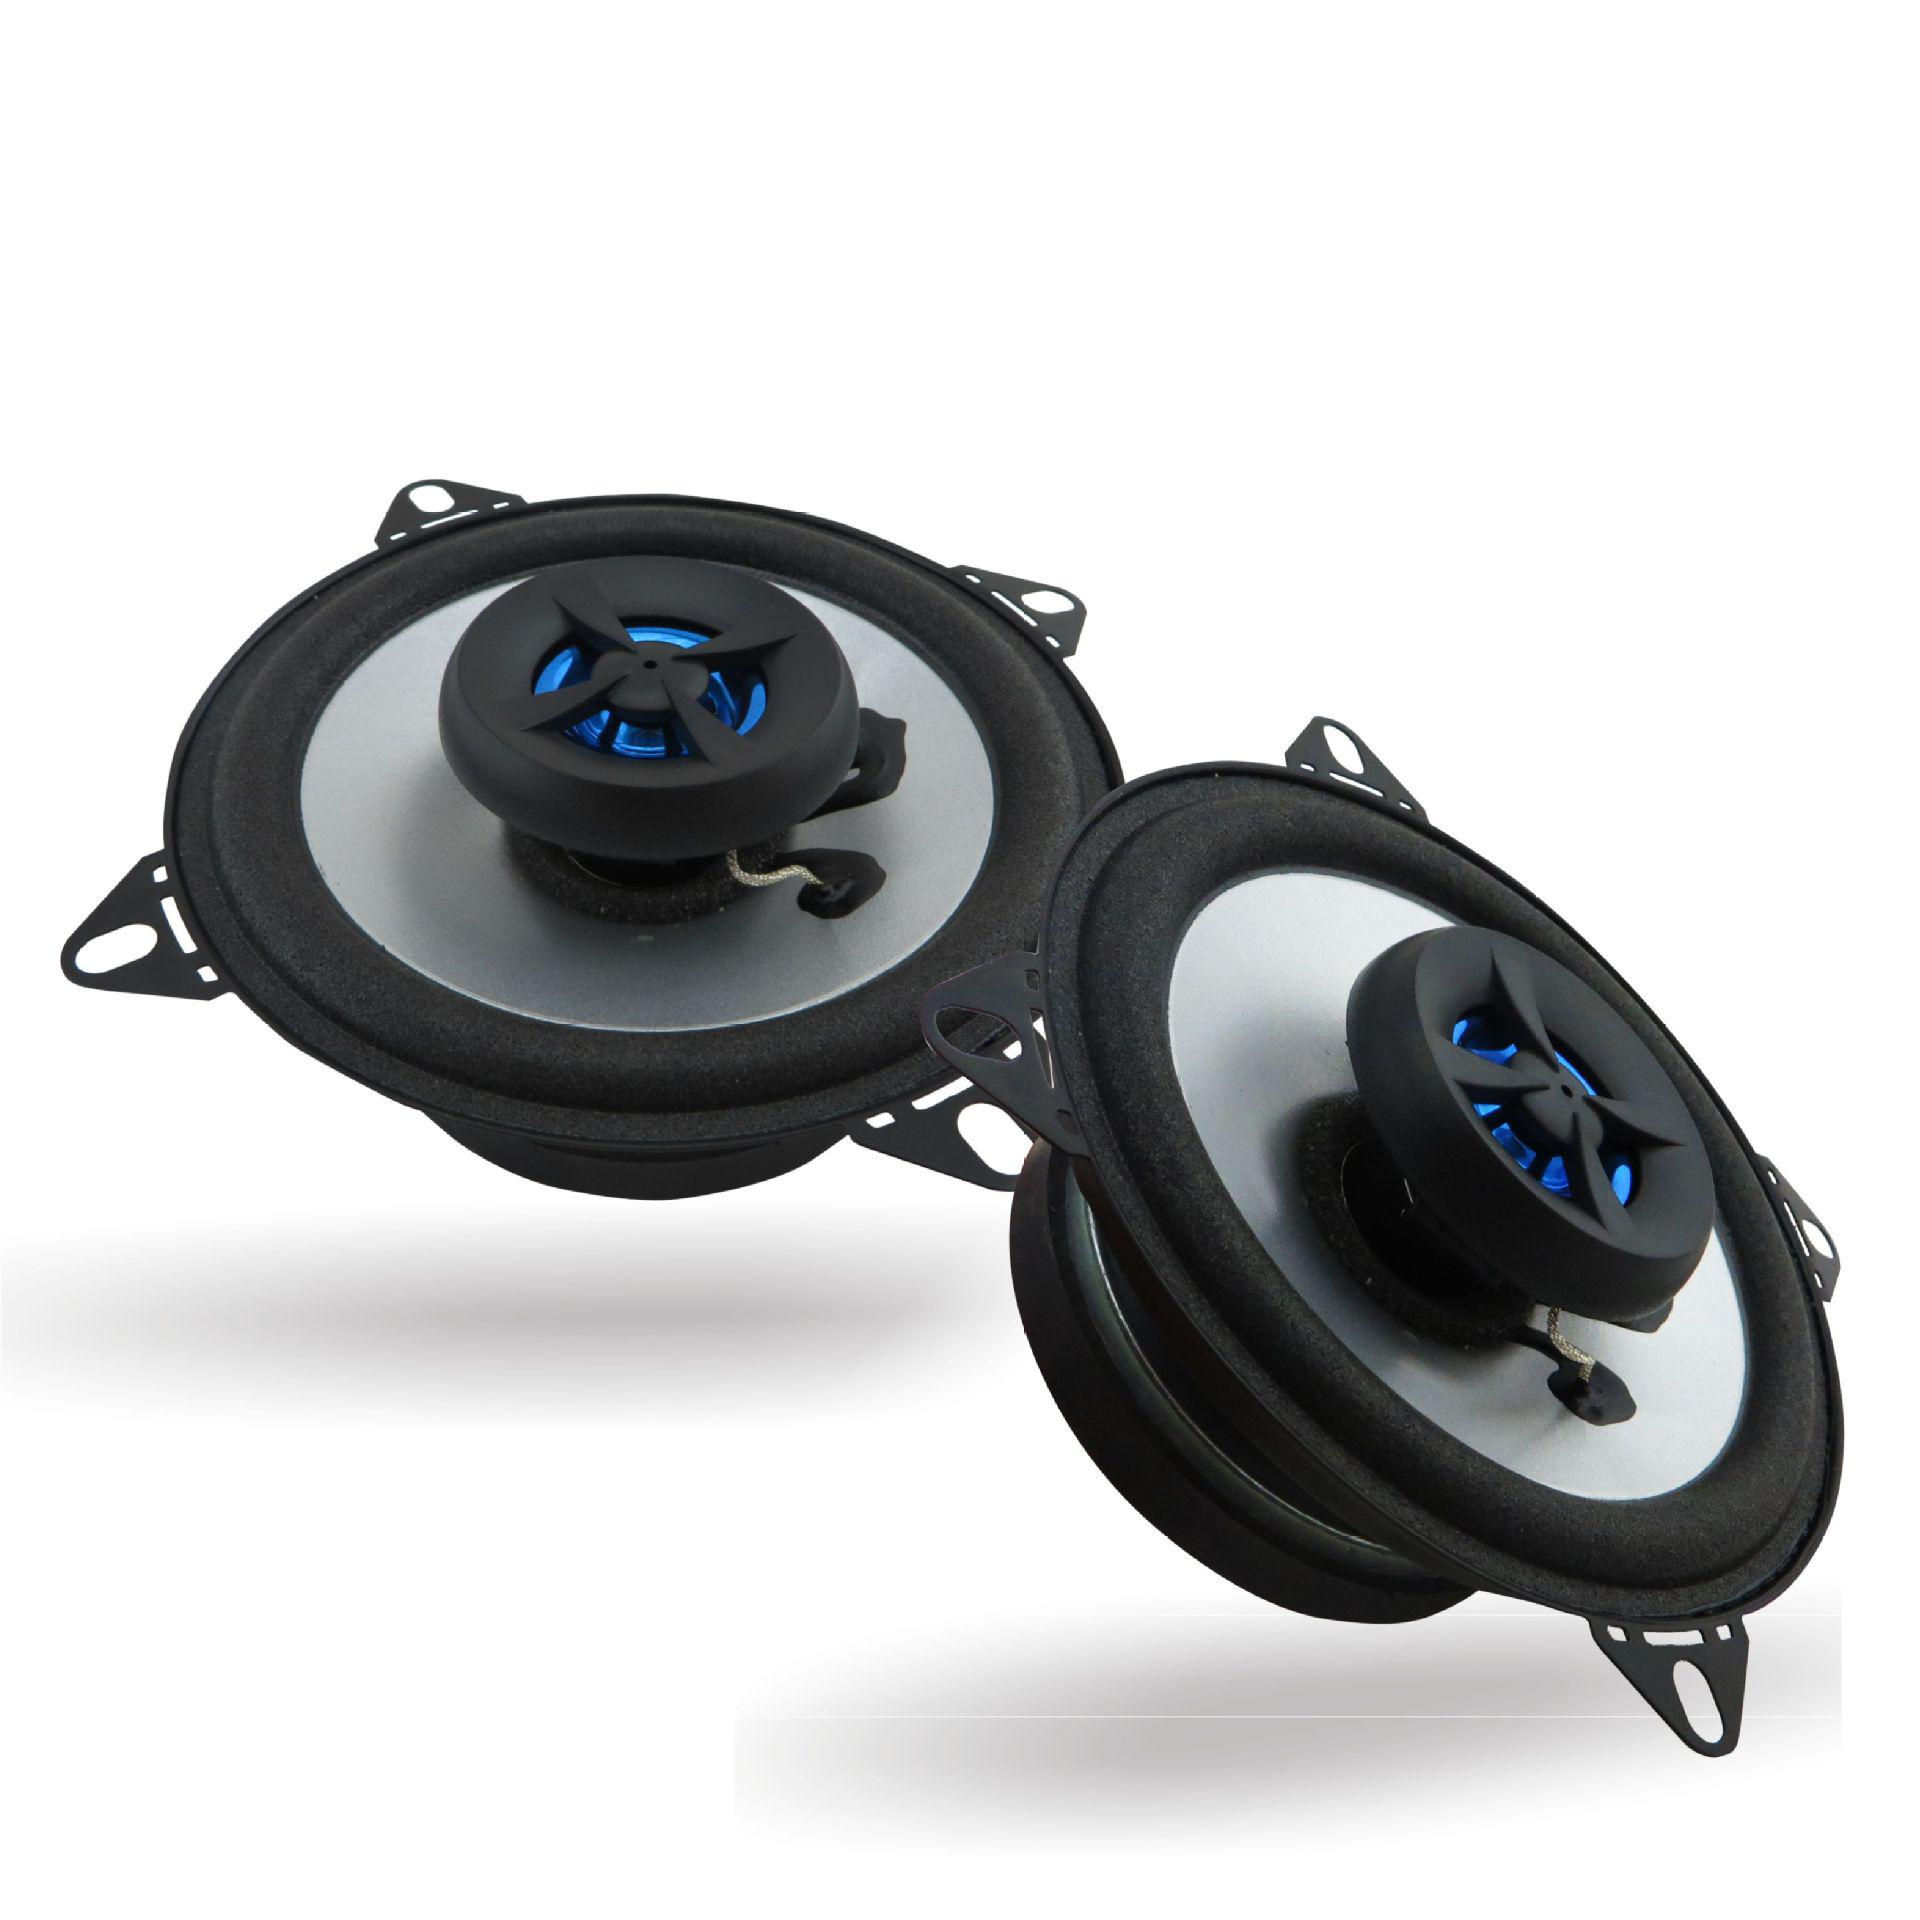 4 Inch Car Speakers High-end Coaxial Speakers 2-way High-end Car Coaxial Horn Classic Series Of  Auto Audio System Speakers brand new pioneer d series ts d6902r 6x9 720 watt peak 160 watt rms pair 2 way coaxial car speakers with dual layer imx aramid basalt fiber composite cone